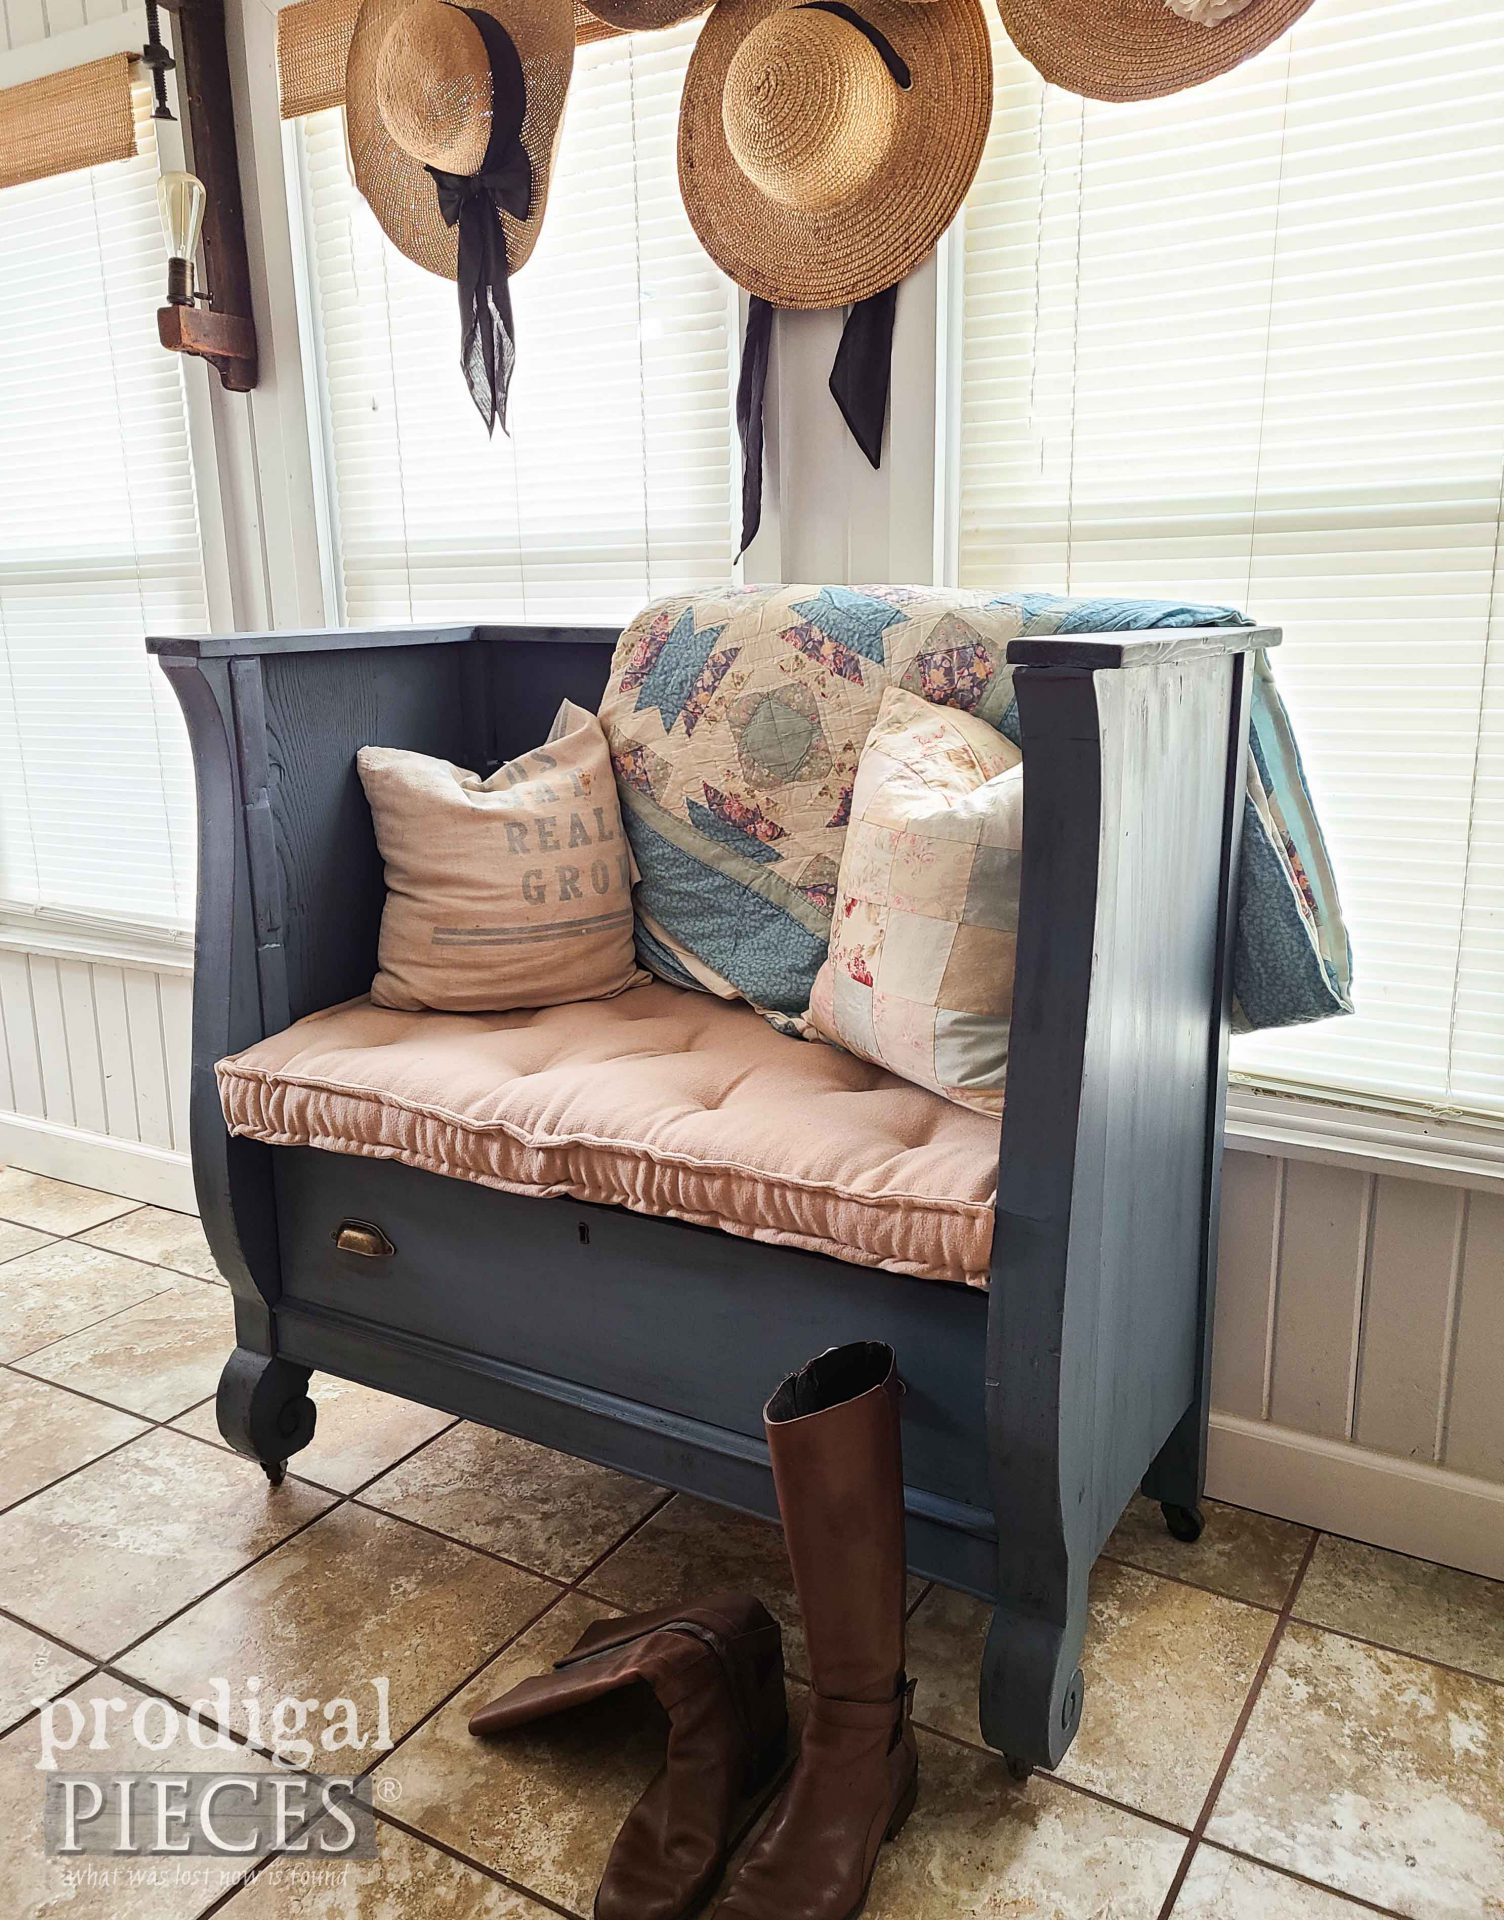 Tufted French Mattress on Blue Bench Made from Upcycled Antique Empire Chest by Larissa of Prodigal Pieces | prodigalpieces.com #prodigalpieces #furniture #home #homedecor #upcycled